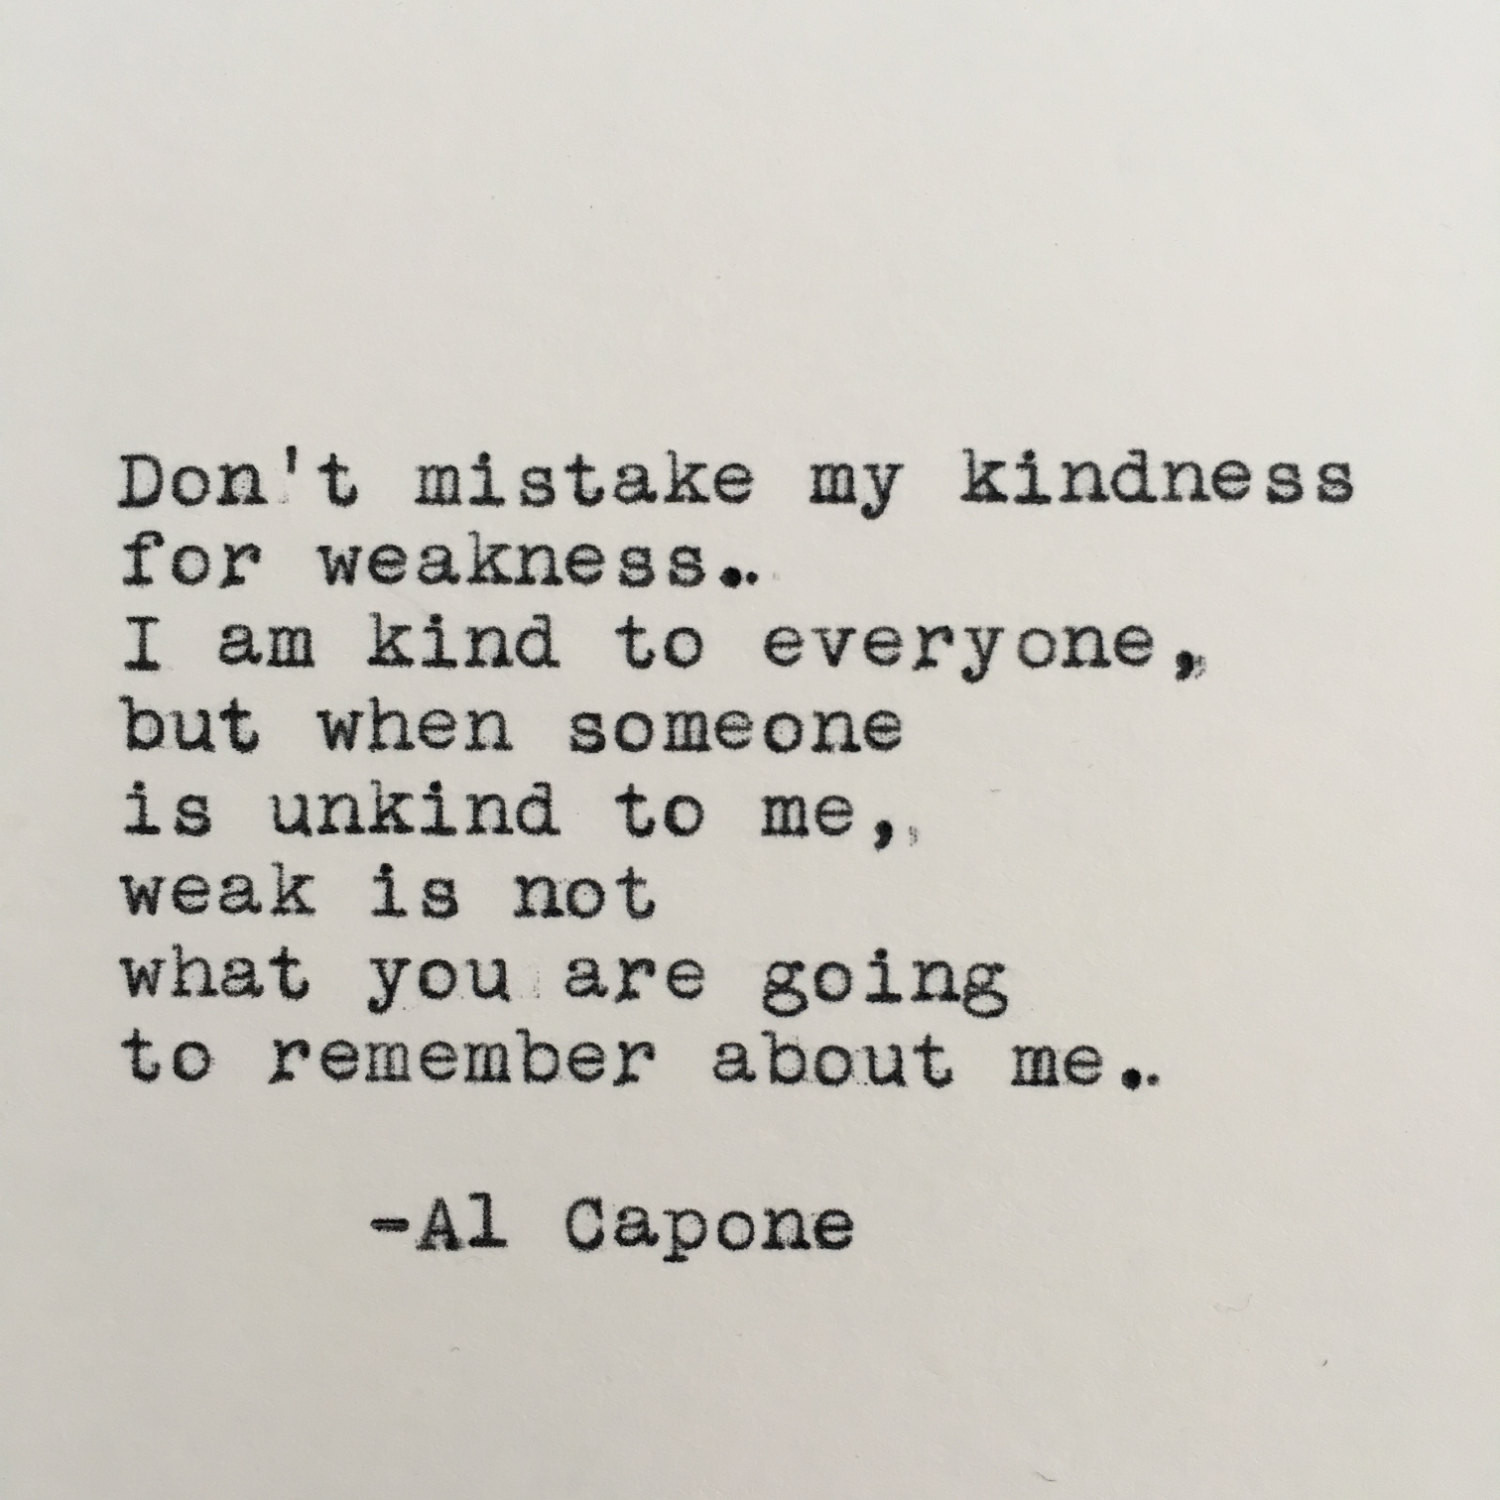 Al Capone Quote Kindness  Al Capone Kindness Quote Typed on Typewriter 4x6 White